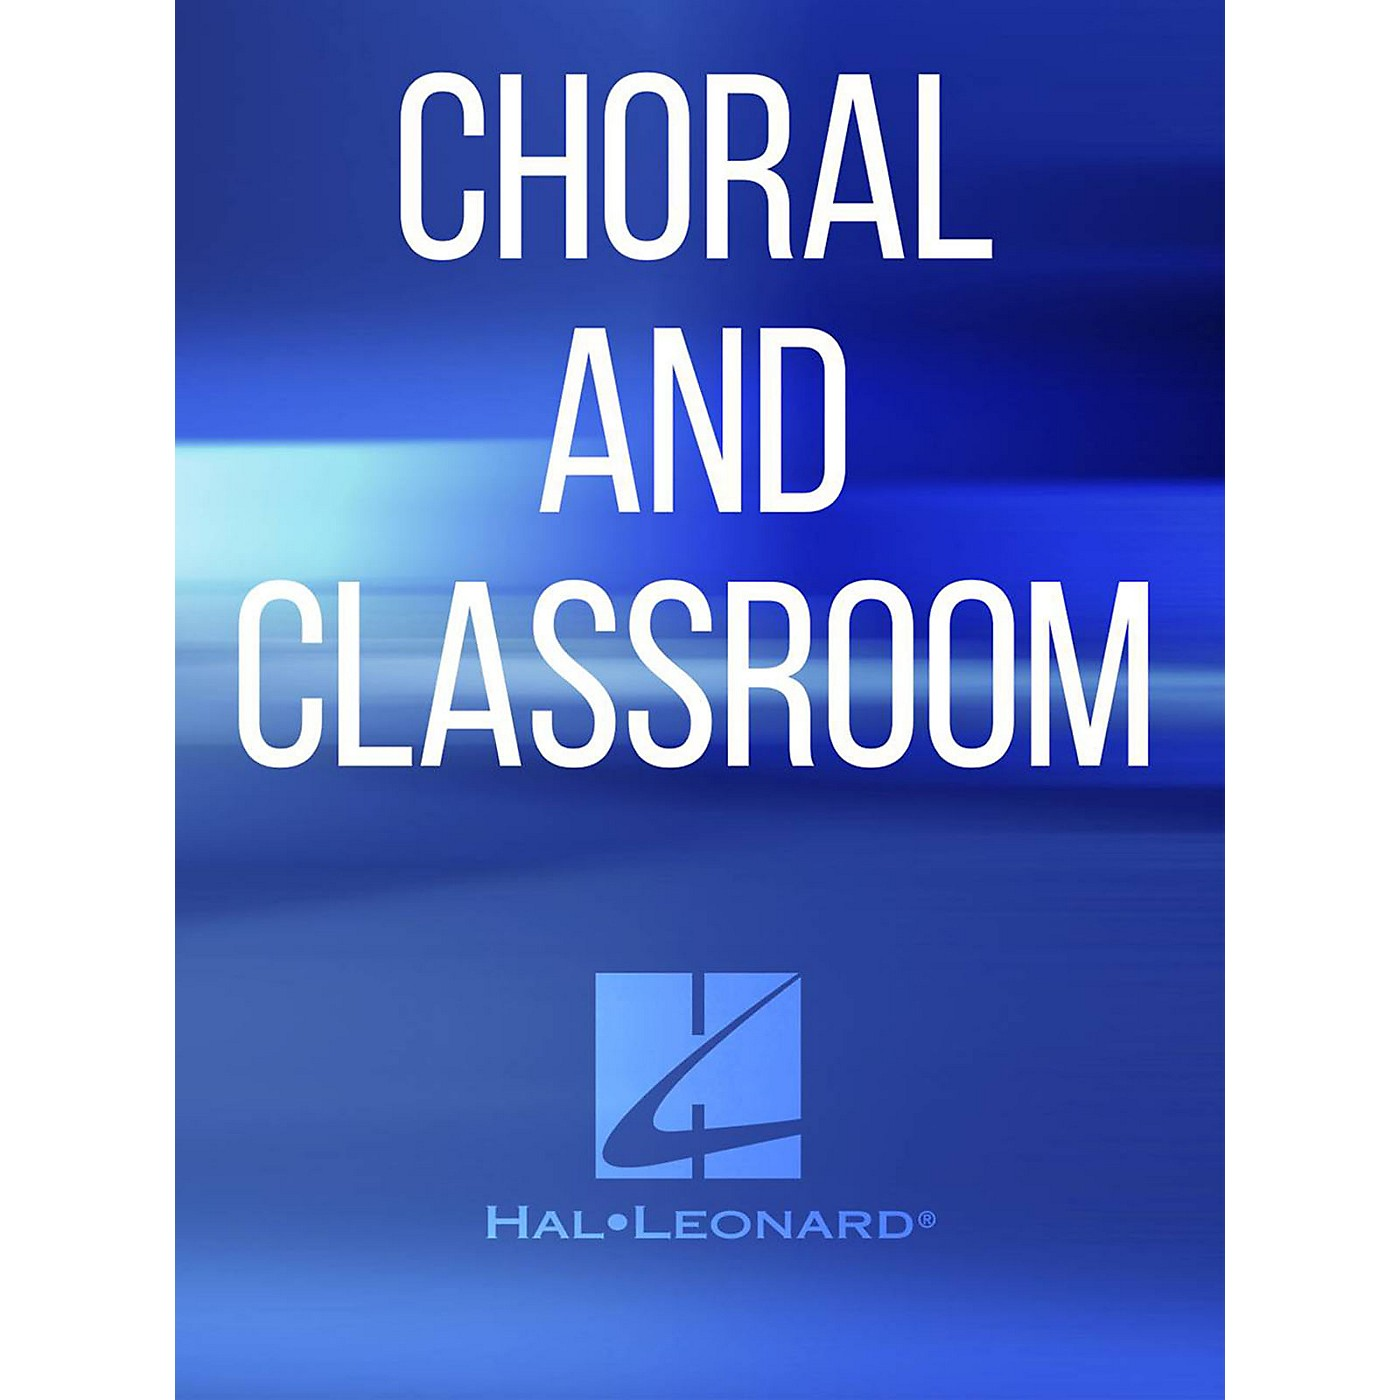 Hal Leonard My Jesus Is Coming SATB Composed by Alvin Trotman thumbnail